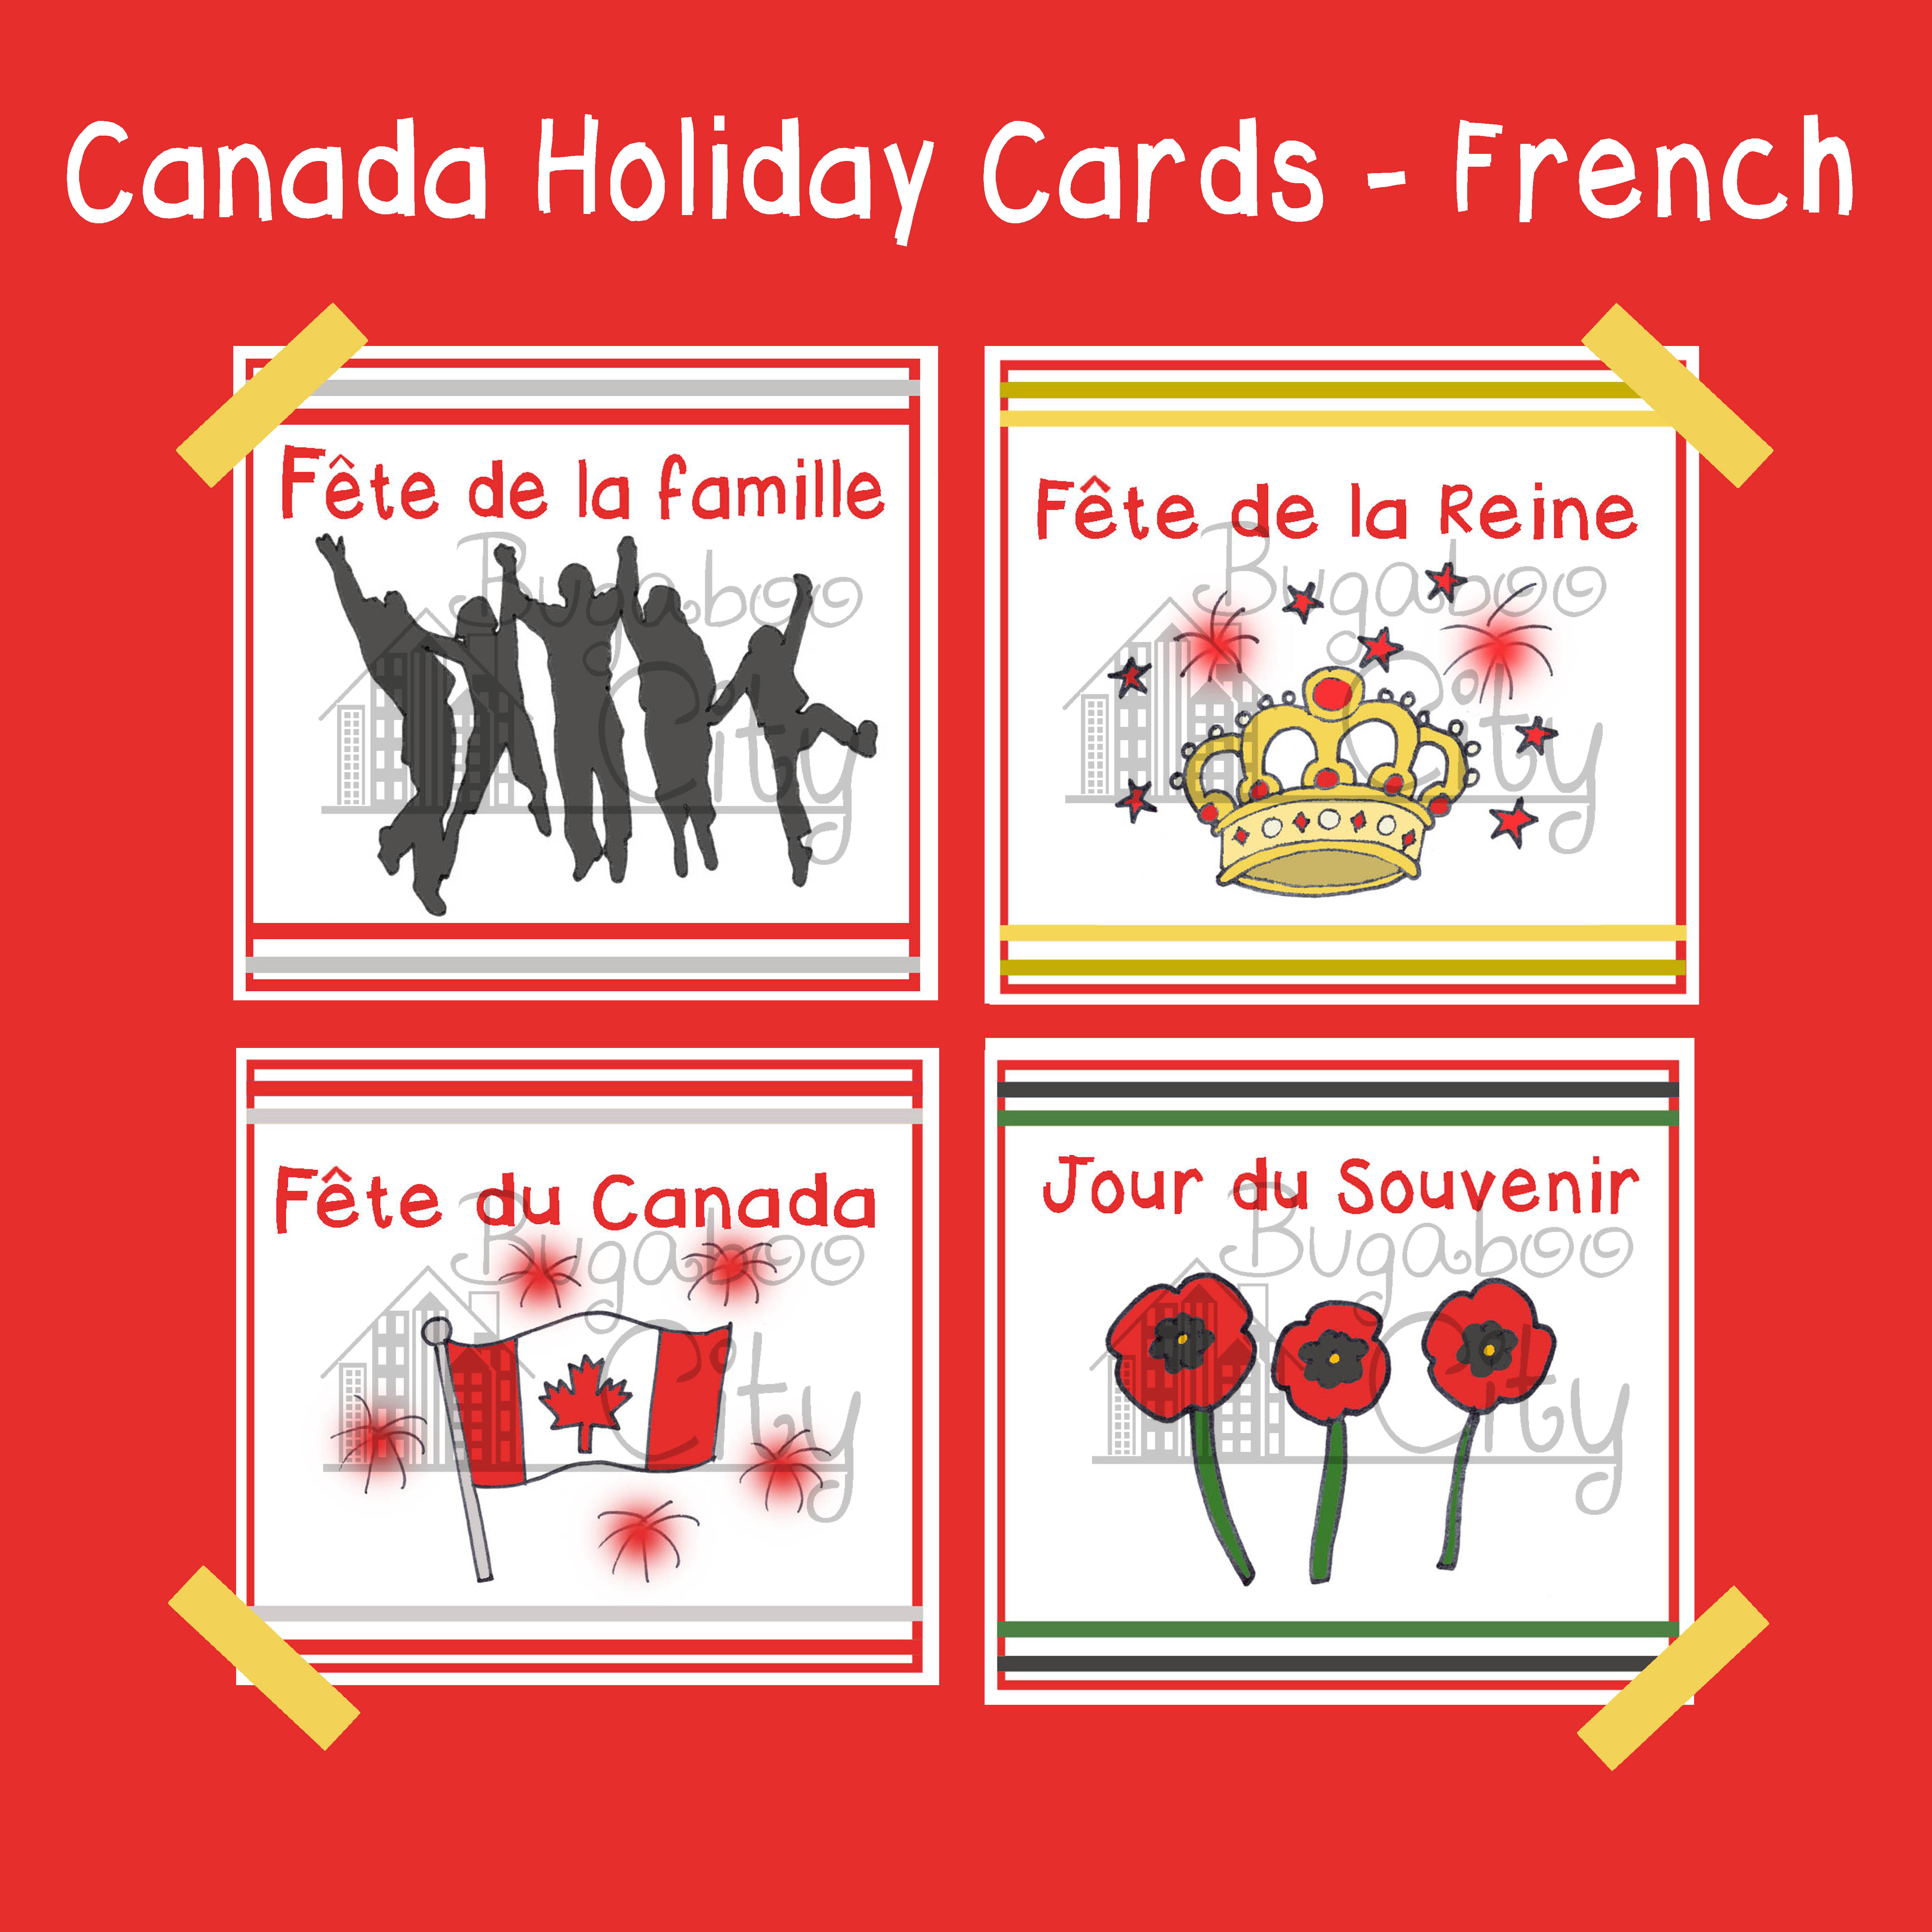 Canadian Holiday Cards In French